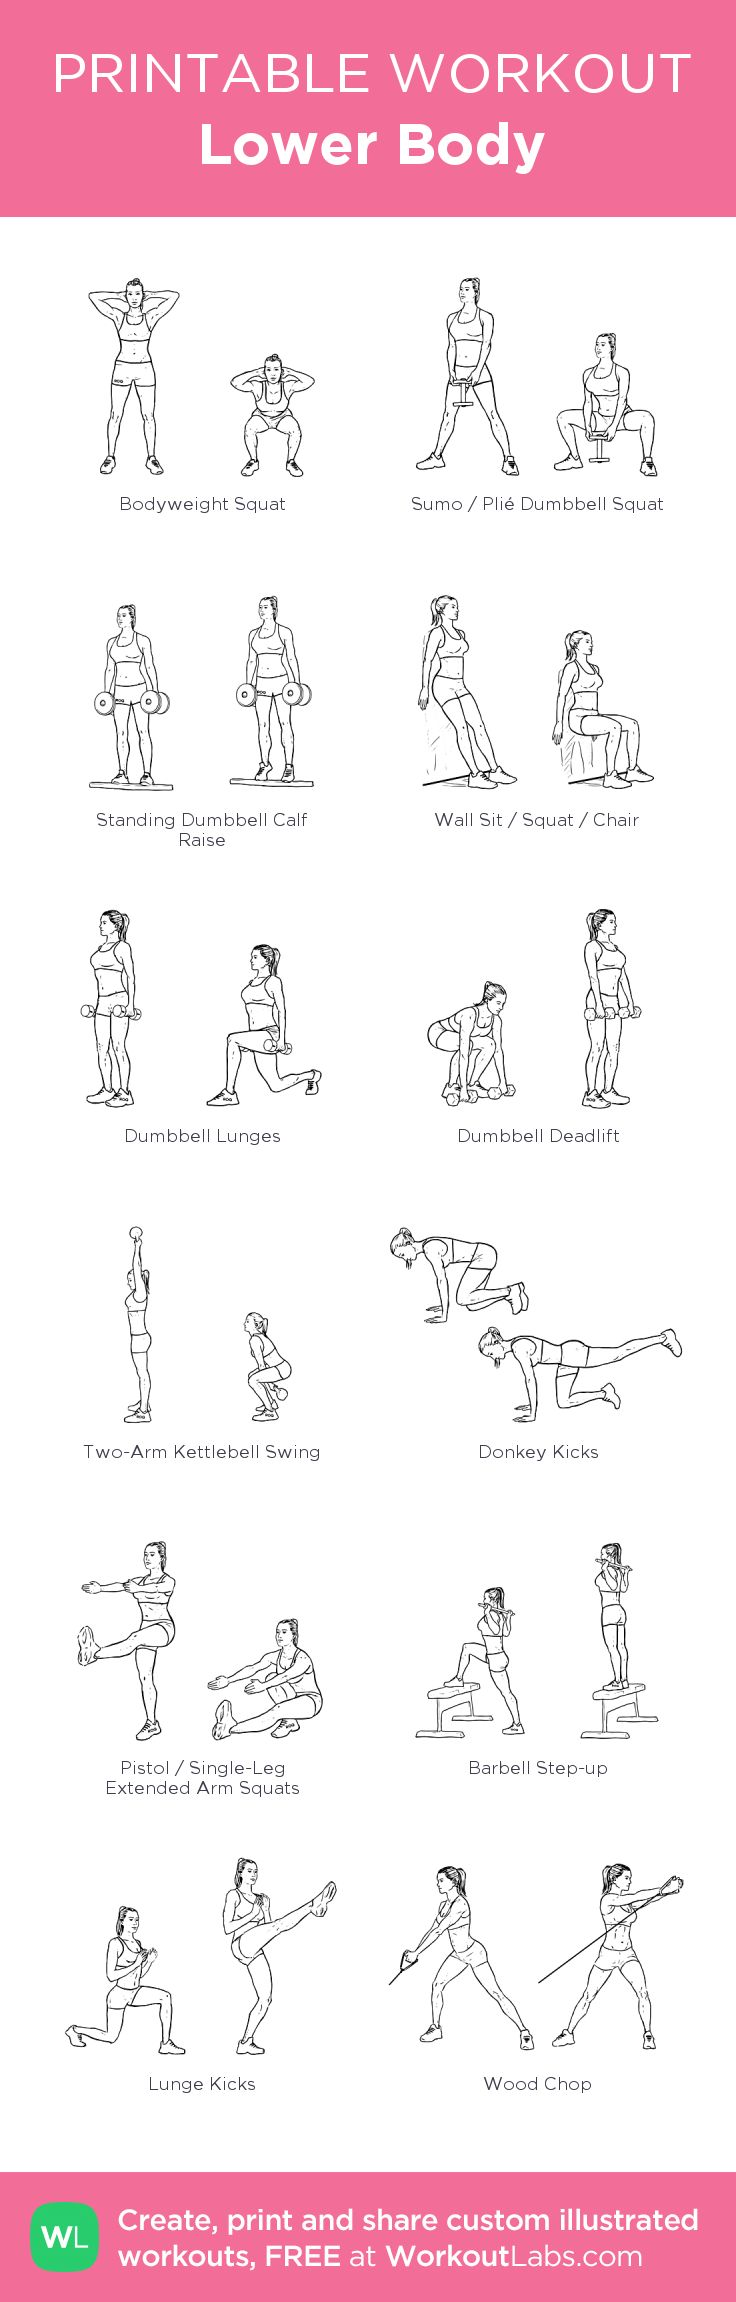 Lower Body –my custom workout created at WorkoutLabs.com • Click through to download as printable PDF! #customworkout